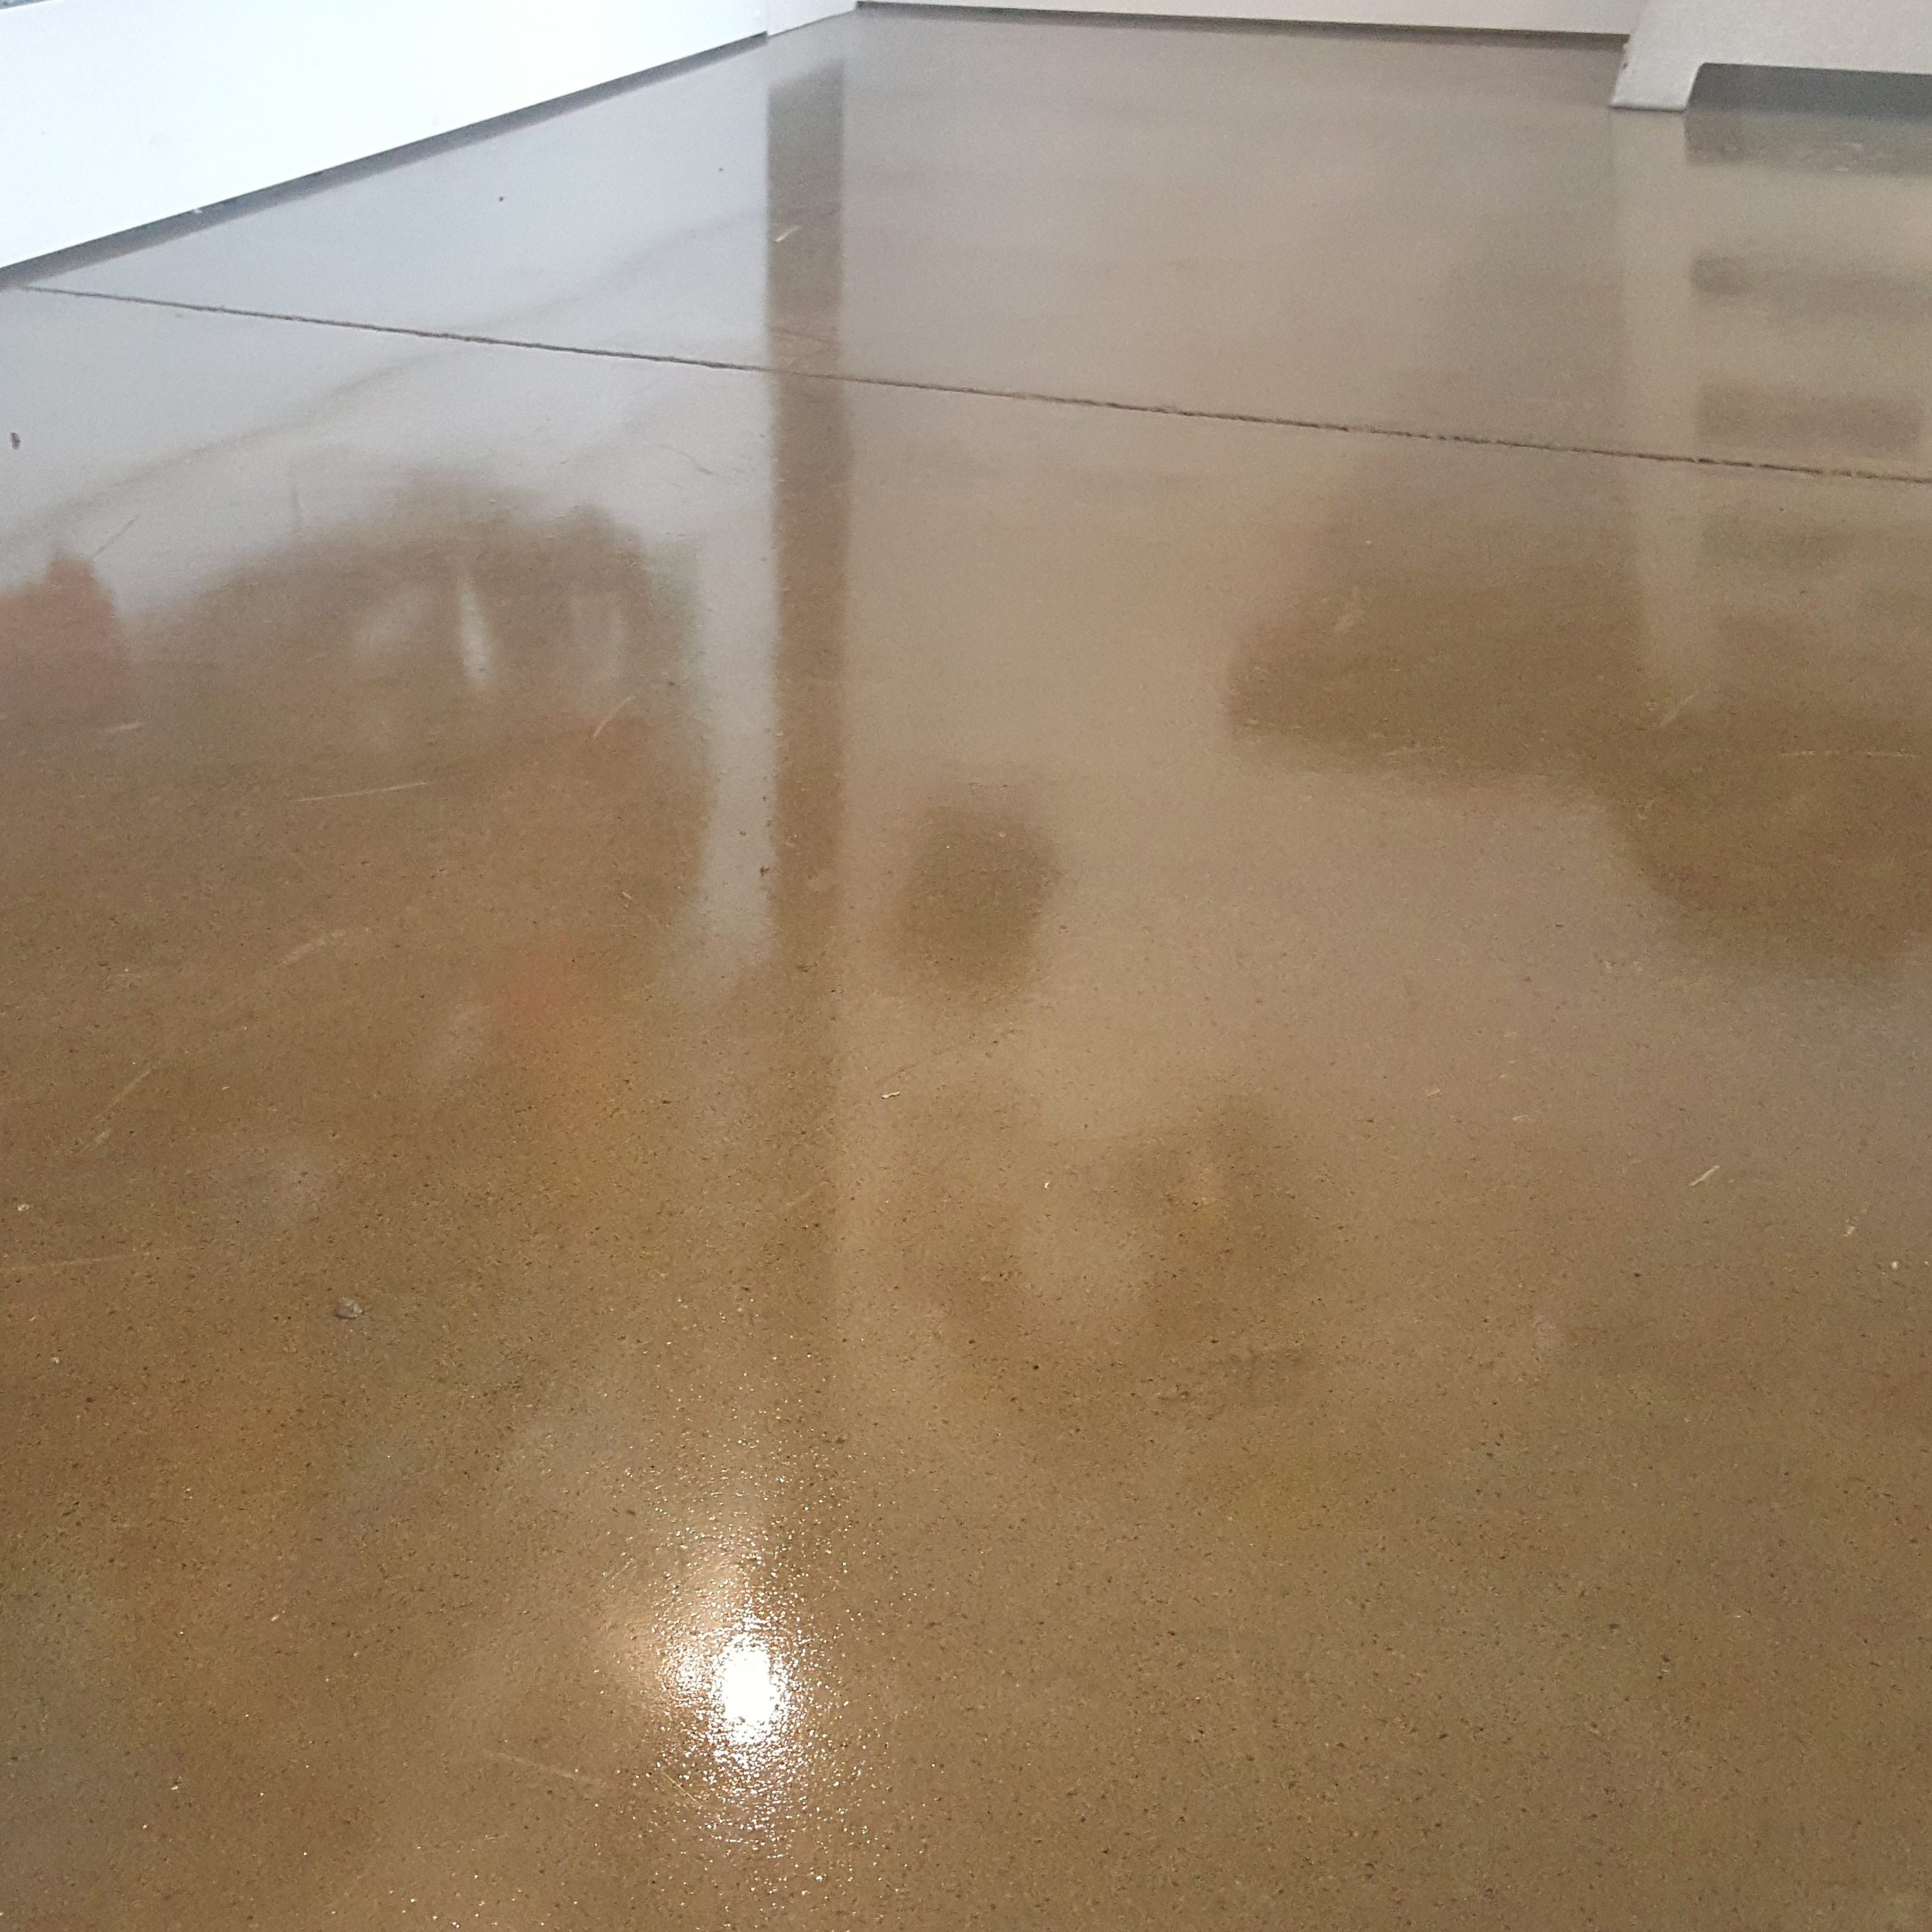 san our willow valley polished silicon floors gallery jose work polishing floor basement concrete glen